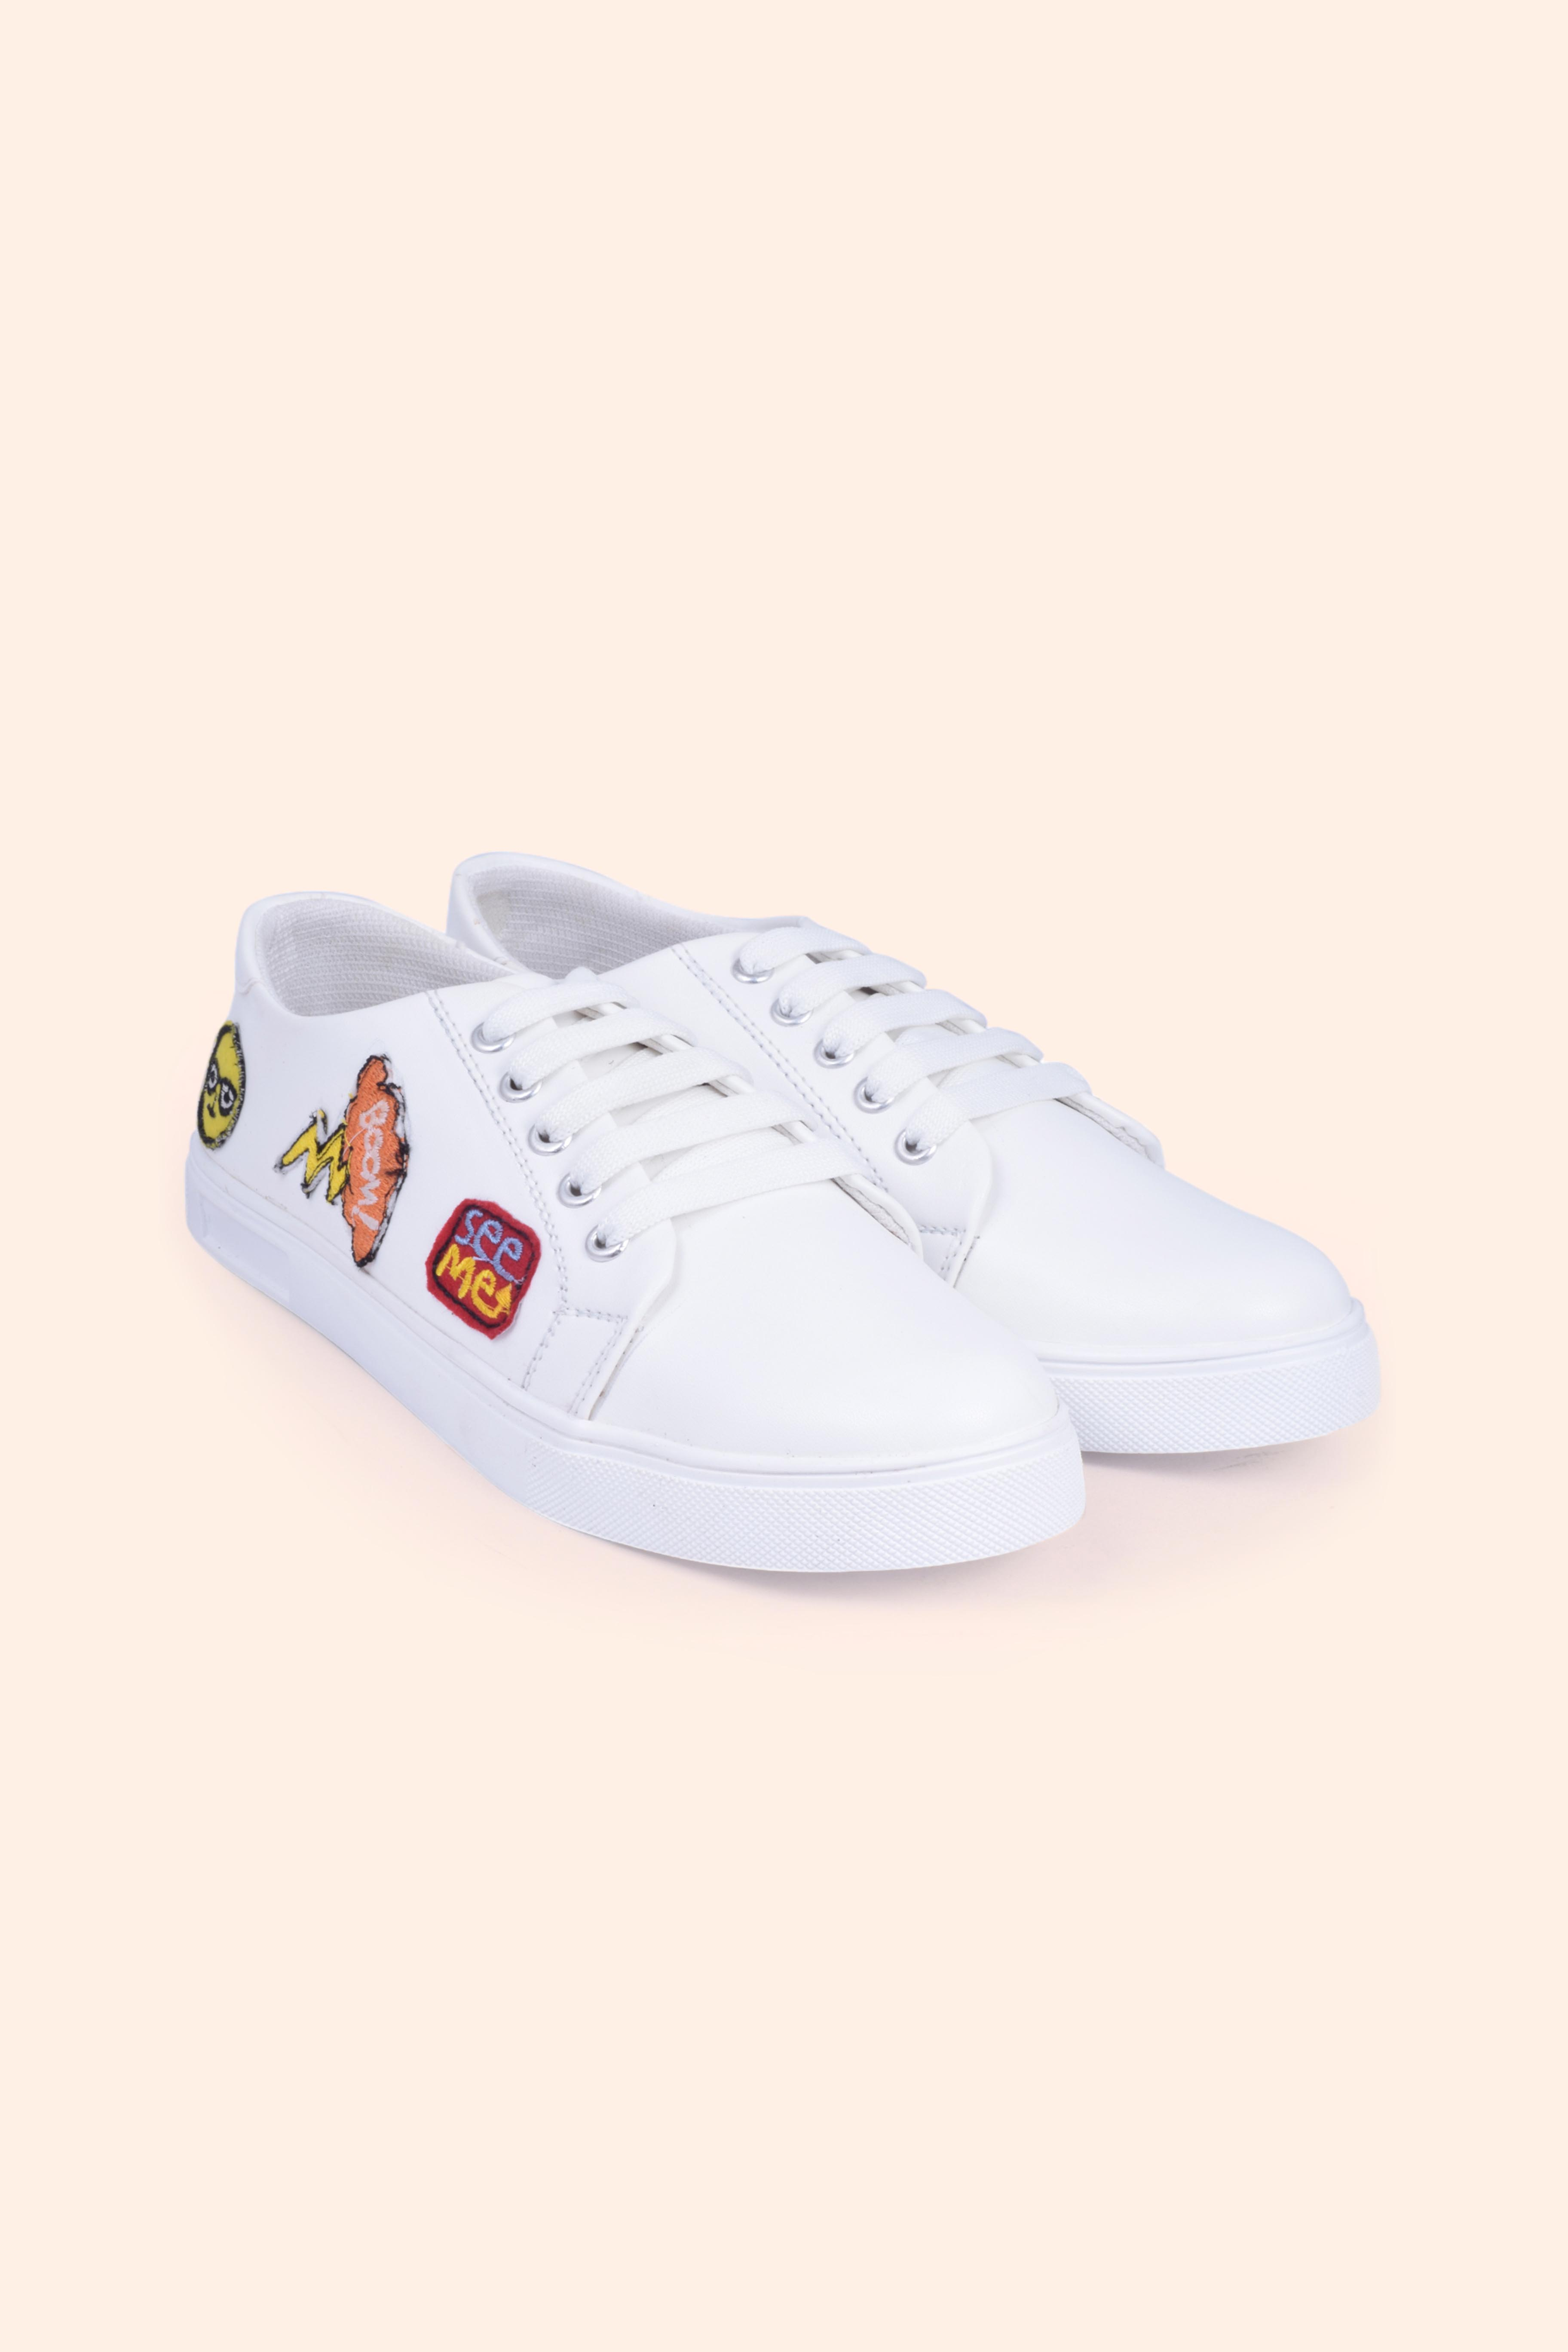 Folle Funky Sticker White Embroidery Casual Sneakers